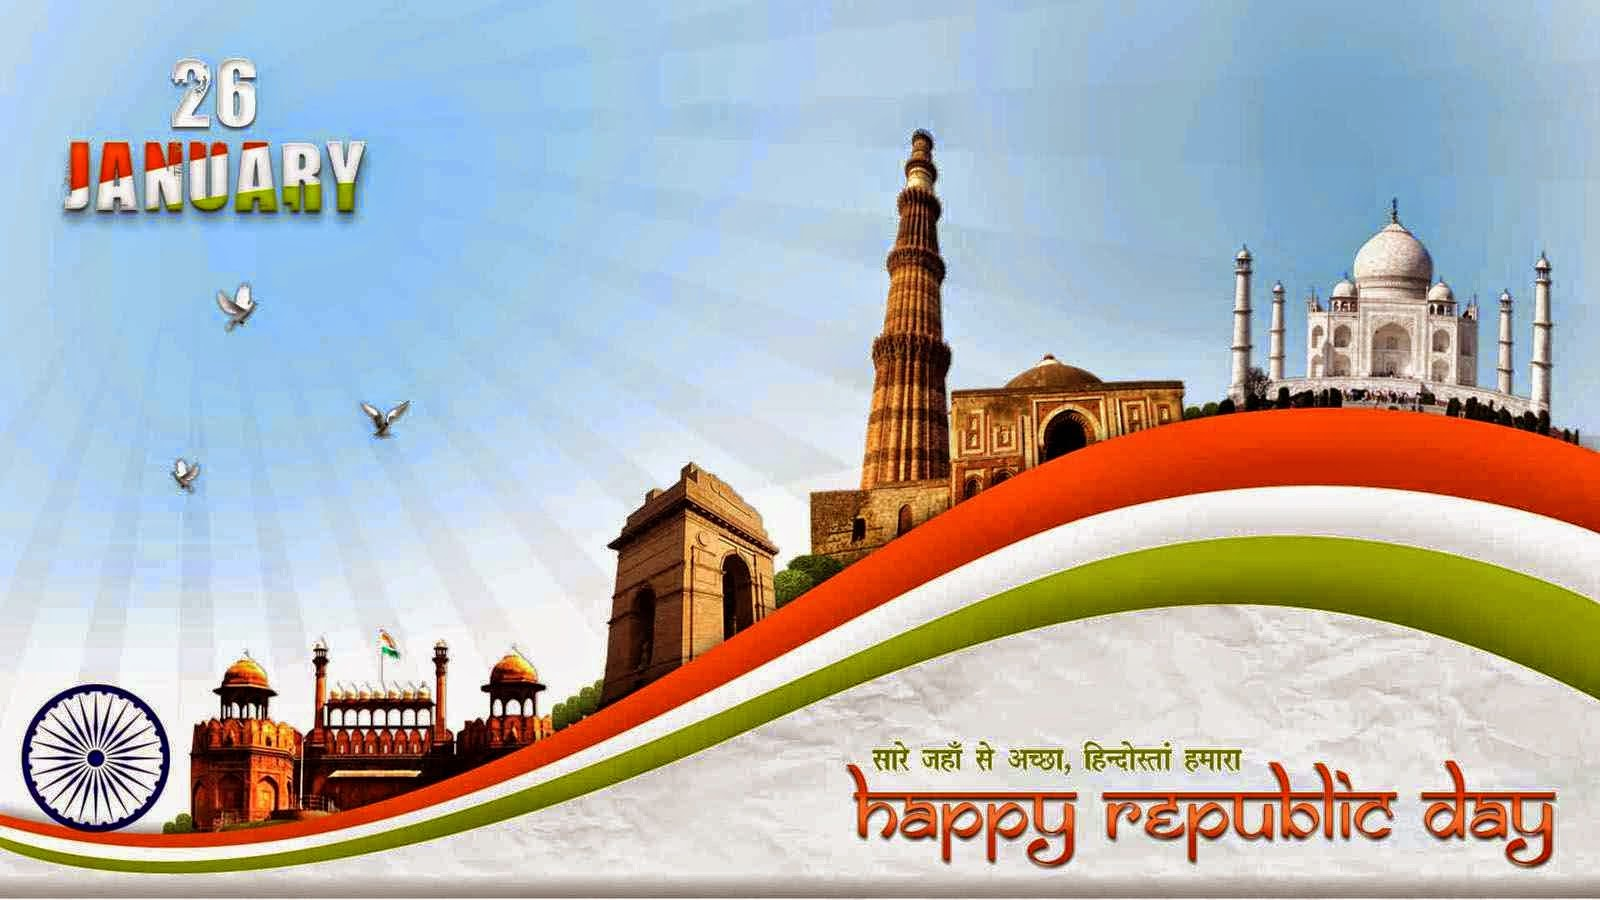 happy republic day 2015, happy republic day Speech, Speech on Republic Day